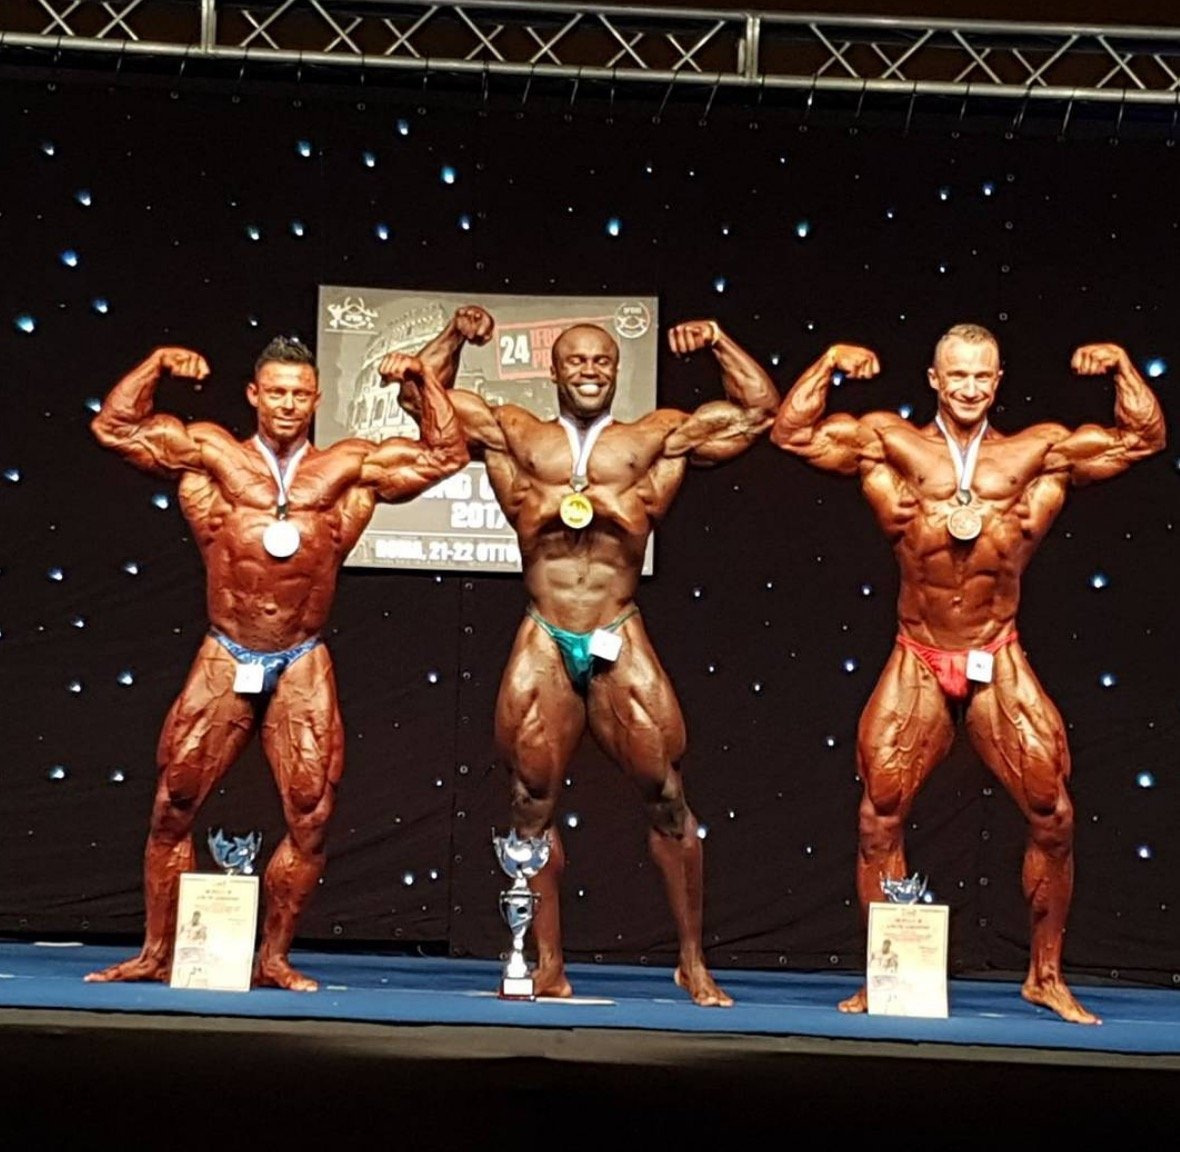 RESULTS: 2017 IFBB Diamond Cup - Rome - Evolution of